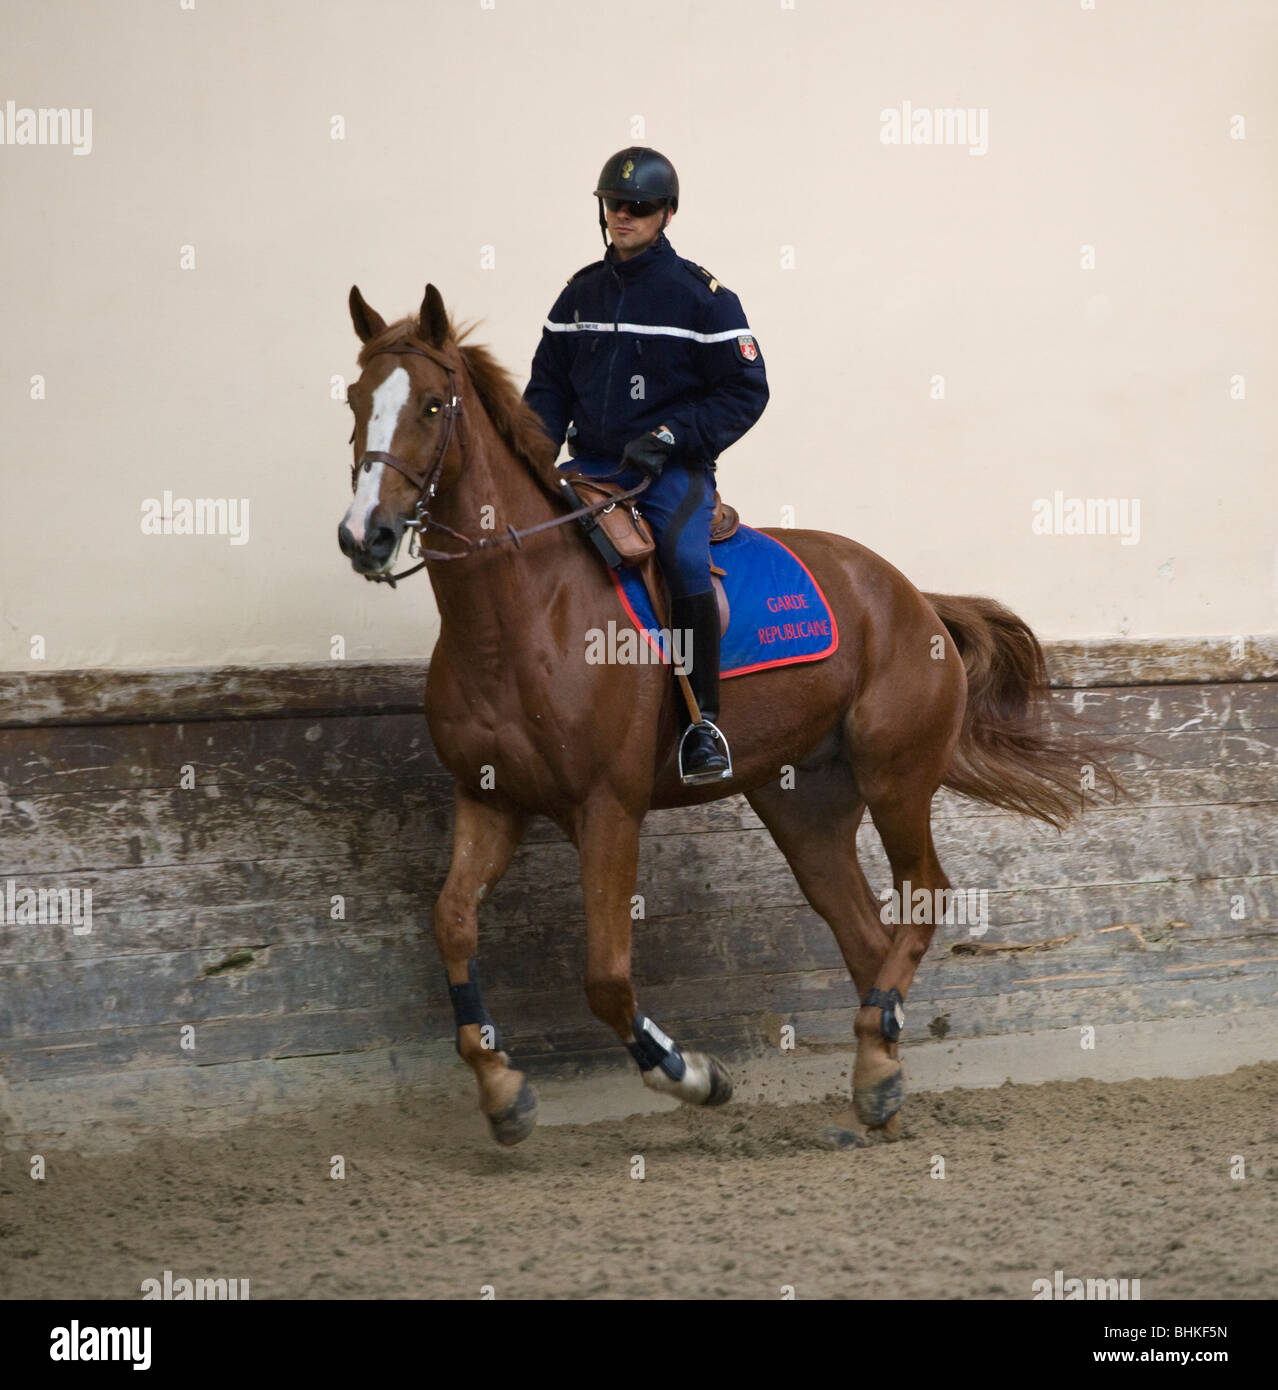 Cavalry French Army Horse Military rider  Guard - Stock Image